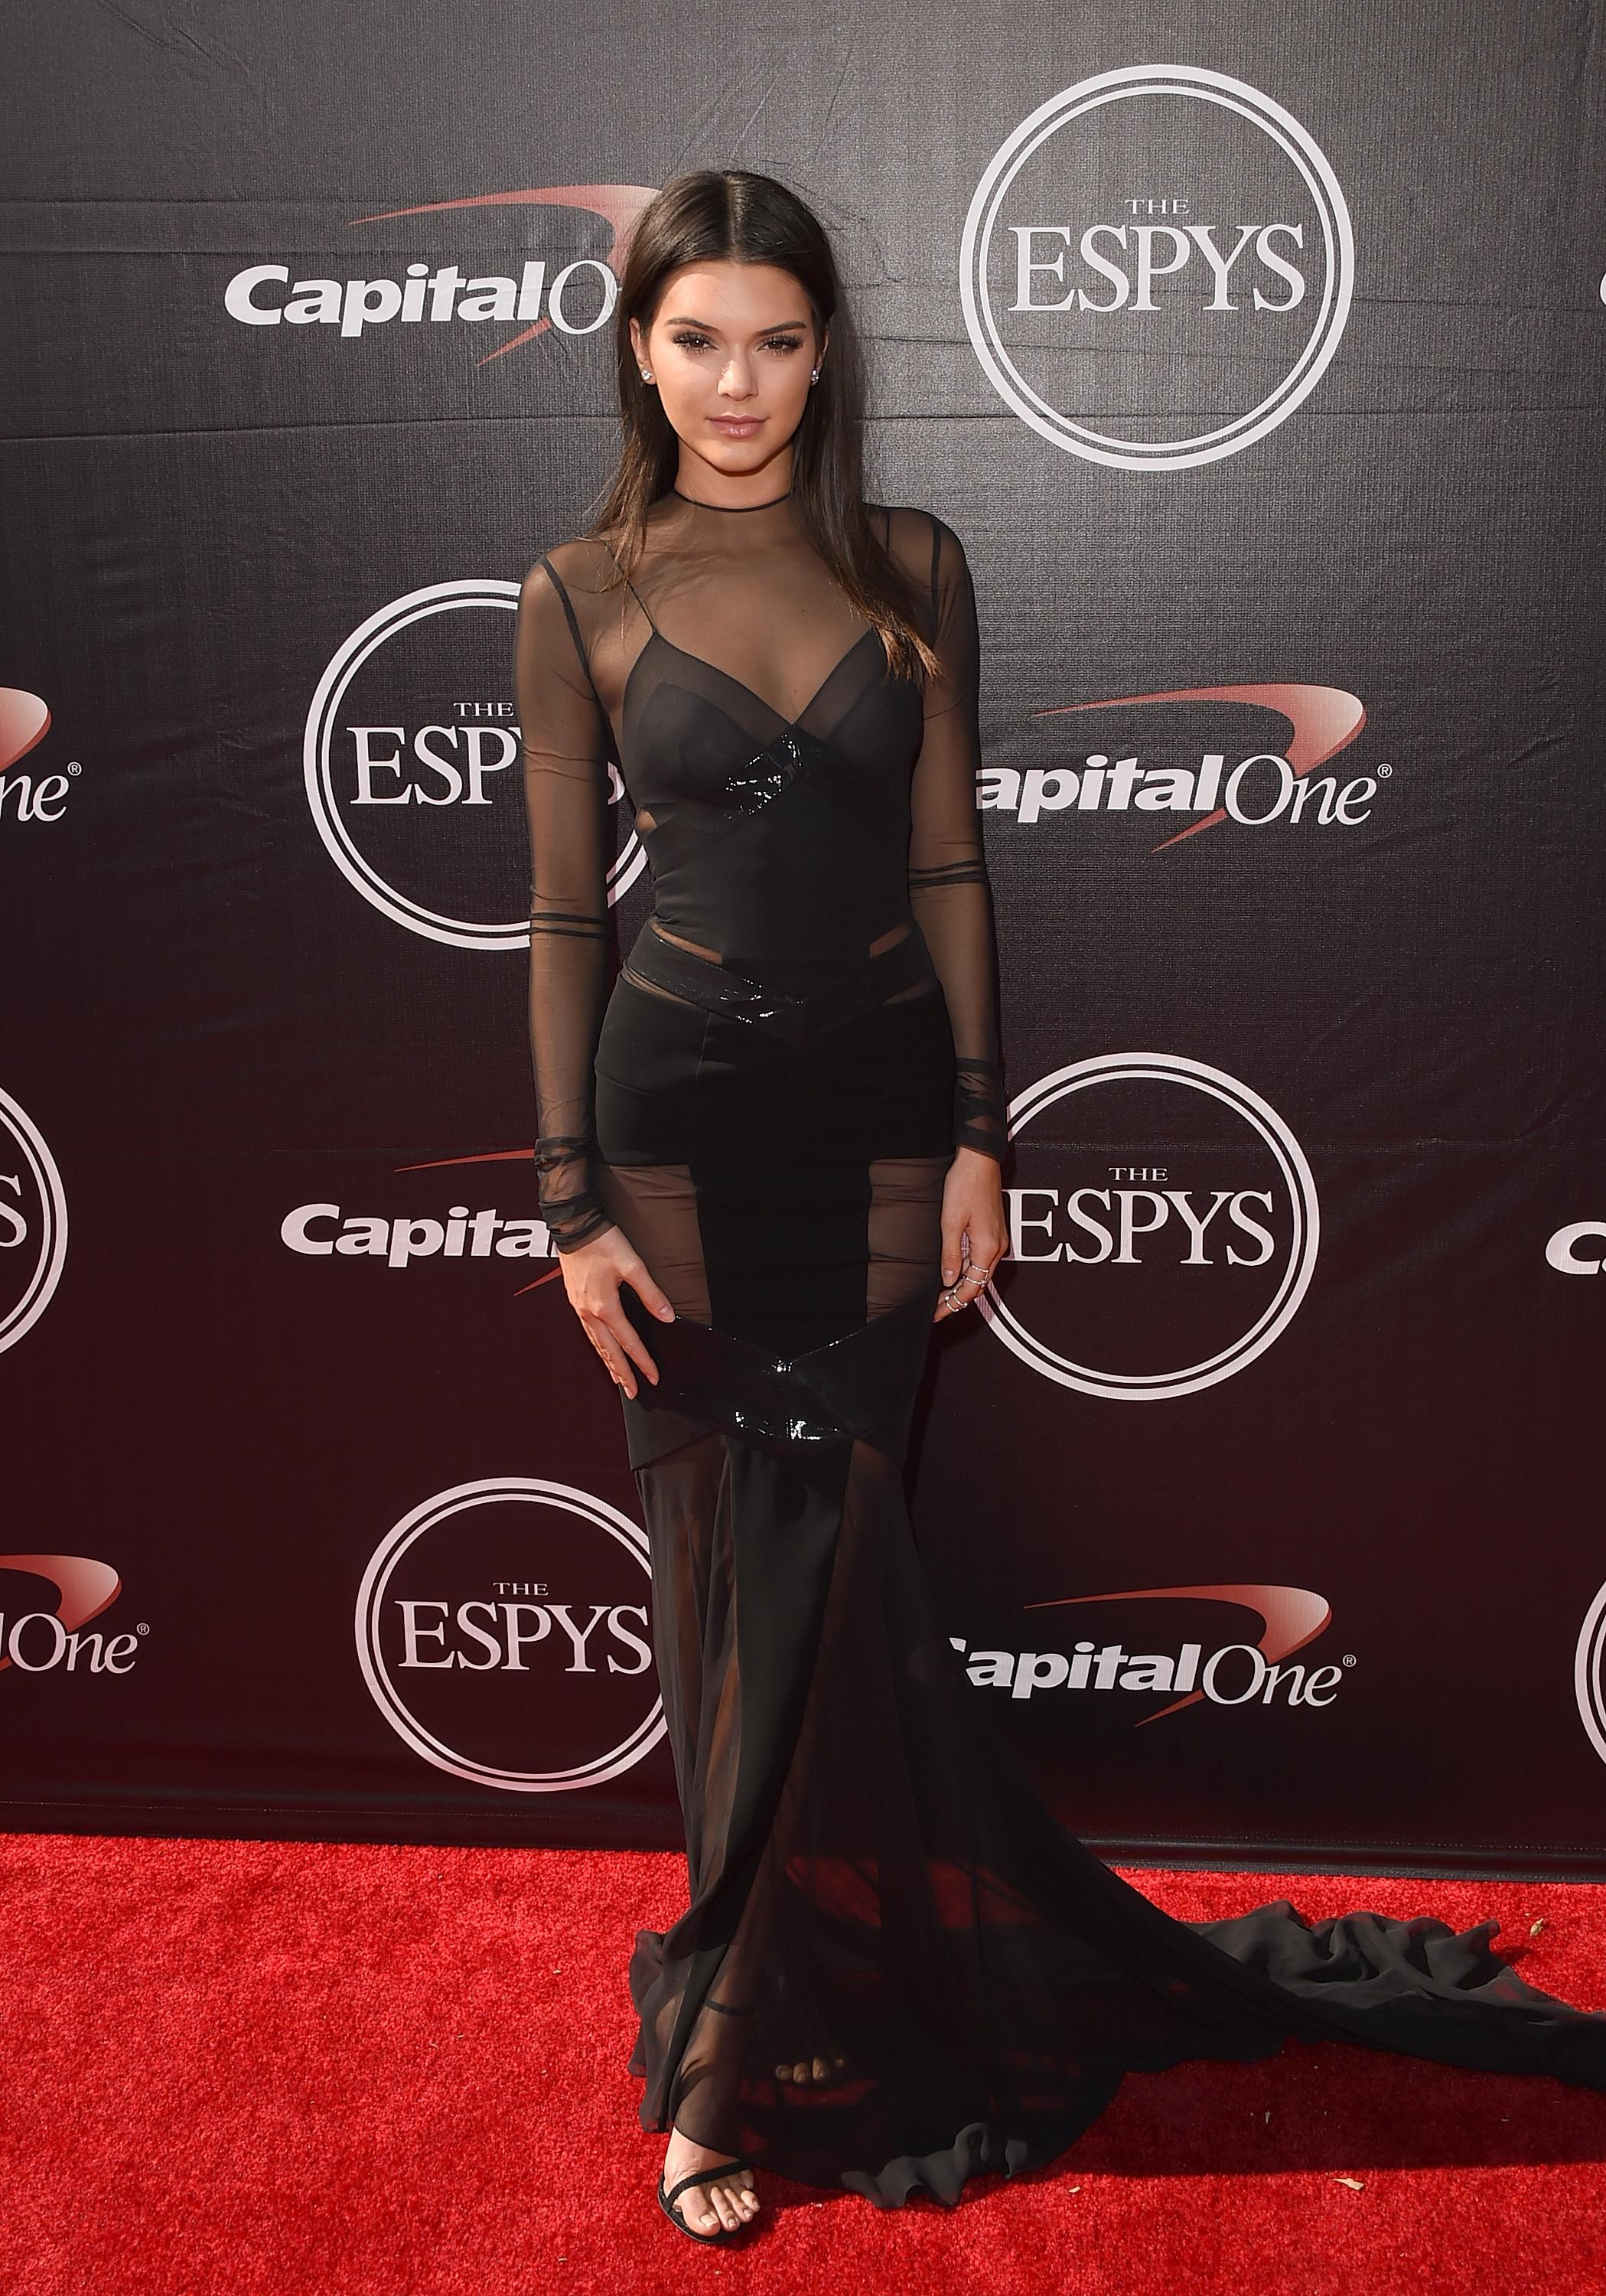 bf5e9be5b8e Espy Awards 2015  The Best And Worst Dressed Celebrities On The Red ...